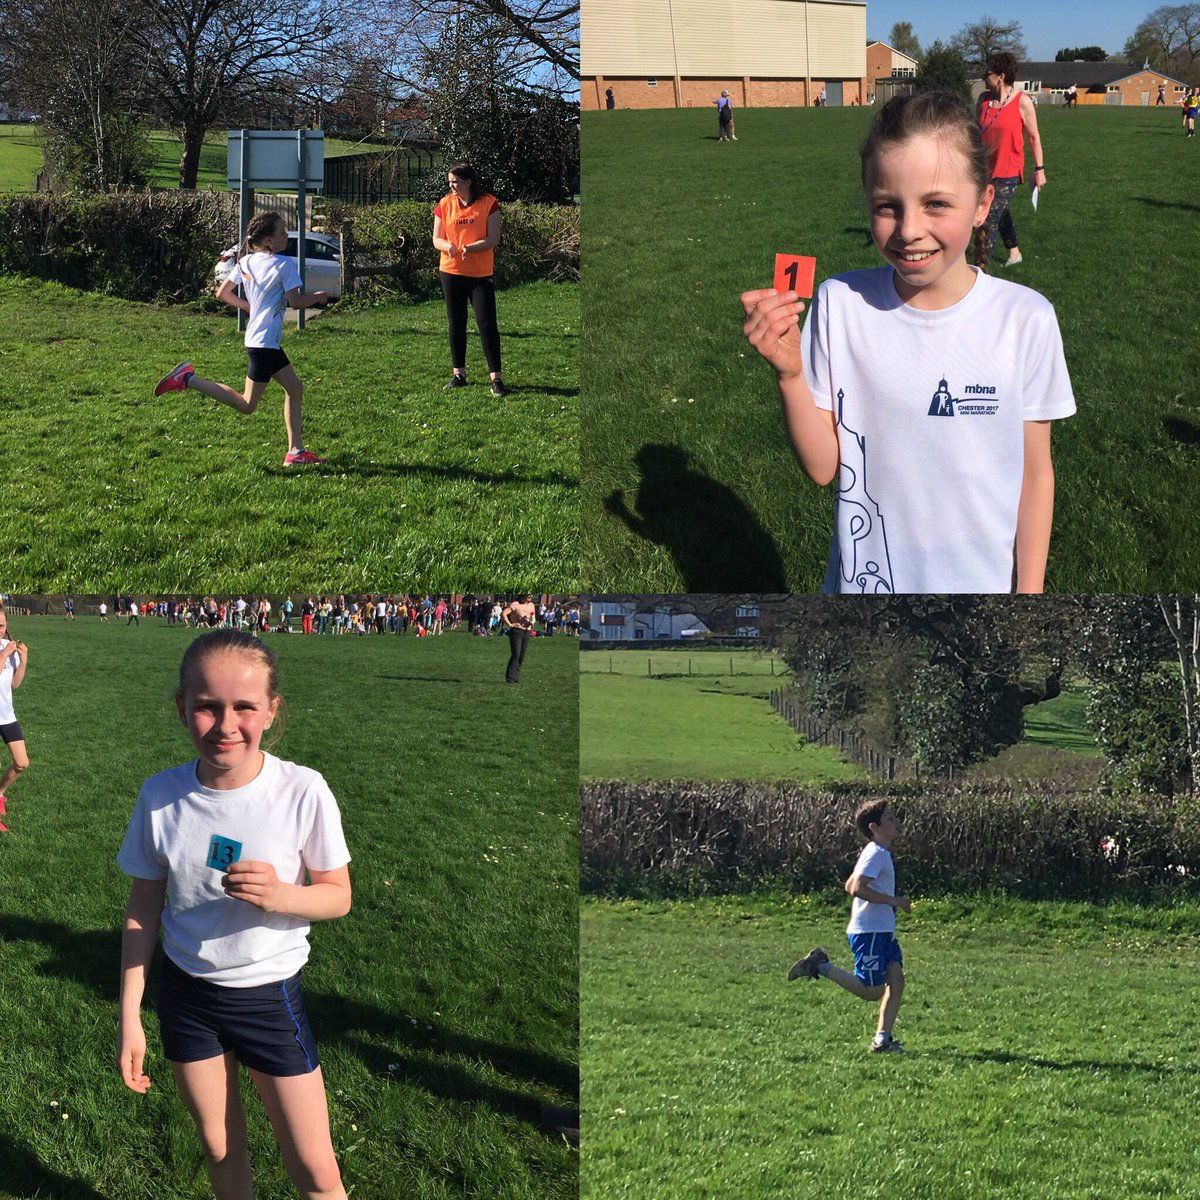 A fantastic run by all the children in the heat at the Oswestry area cross country meet. Well done to everyone, lots of great placings and looking forward to the next one. #FutureStars @Mo_Farah @NWATrust